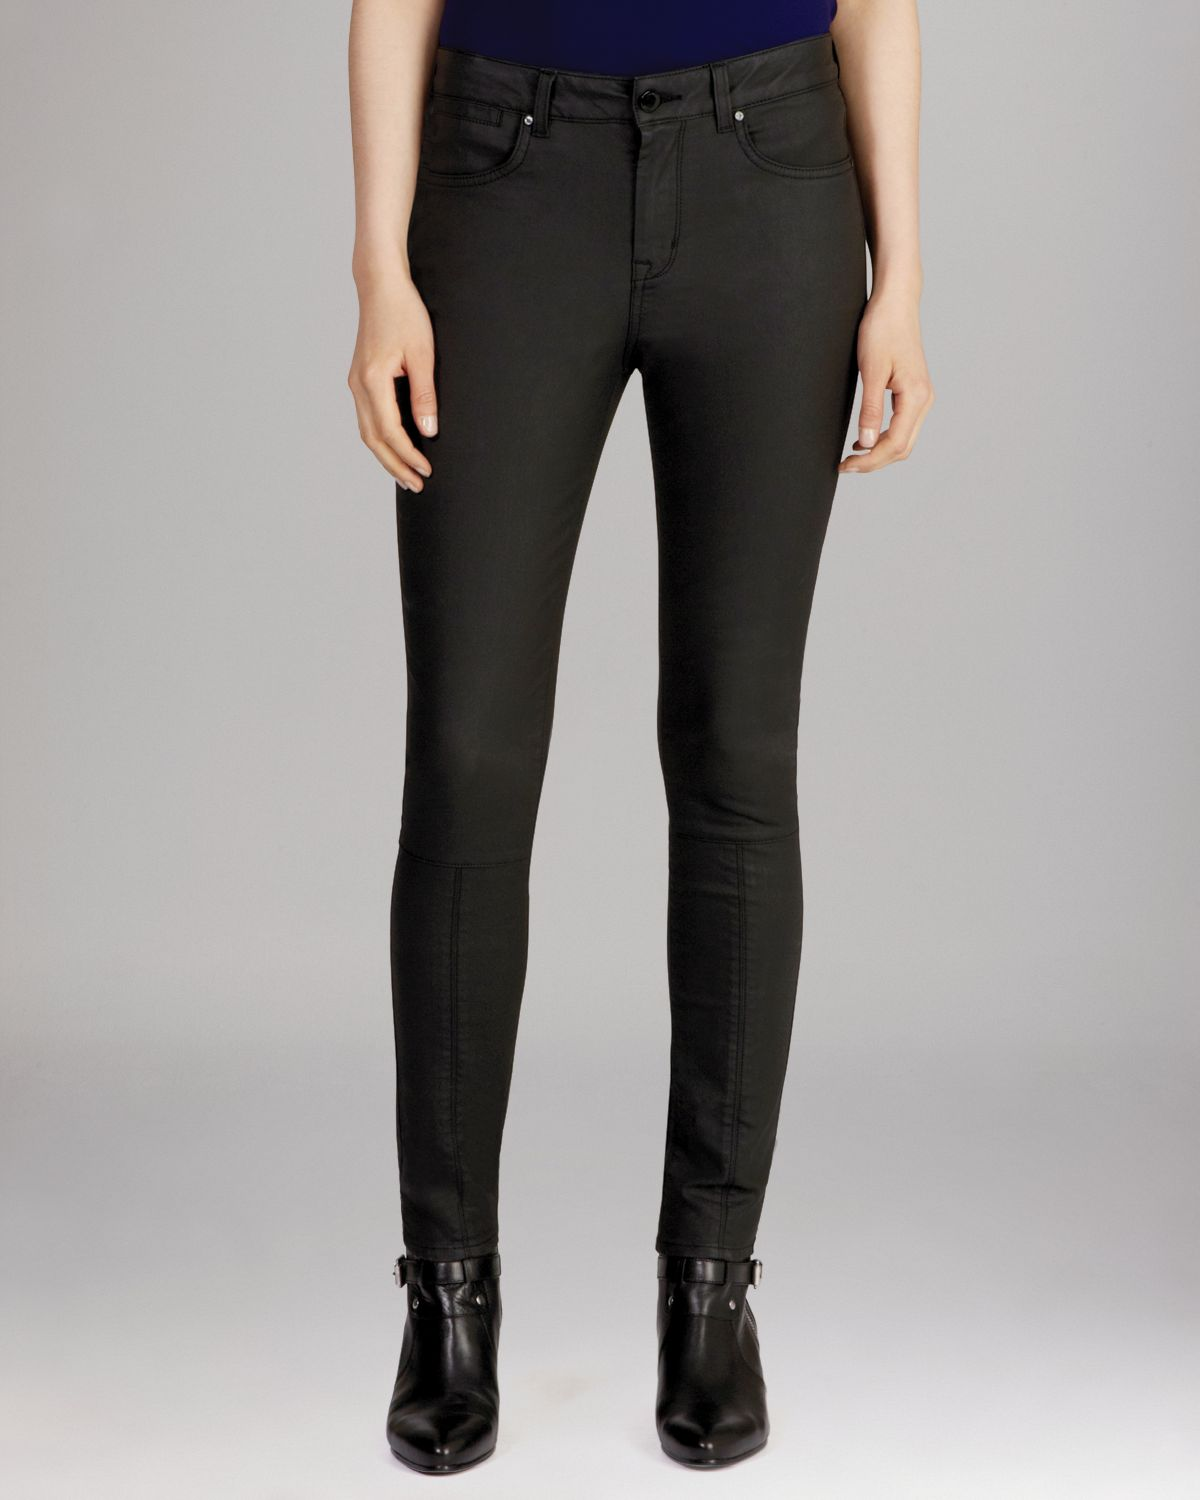 KAREN MILLEN Coated Black Jeans | Bloomingdale's